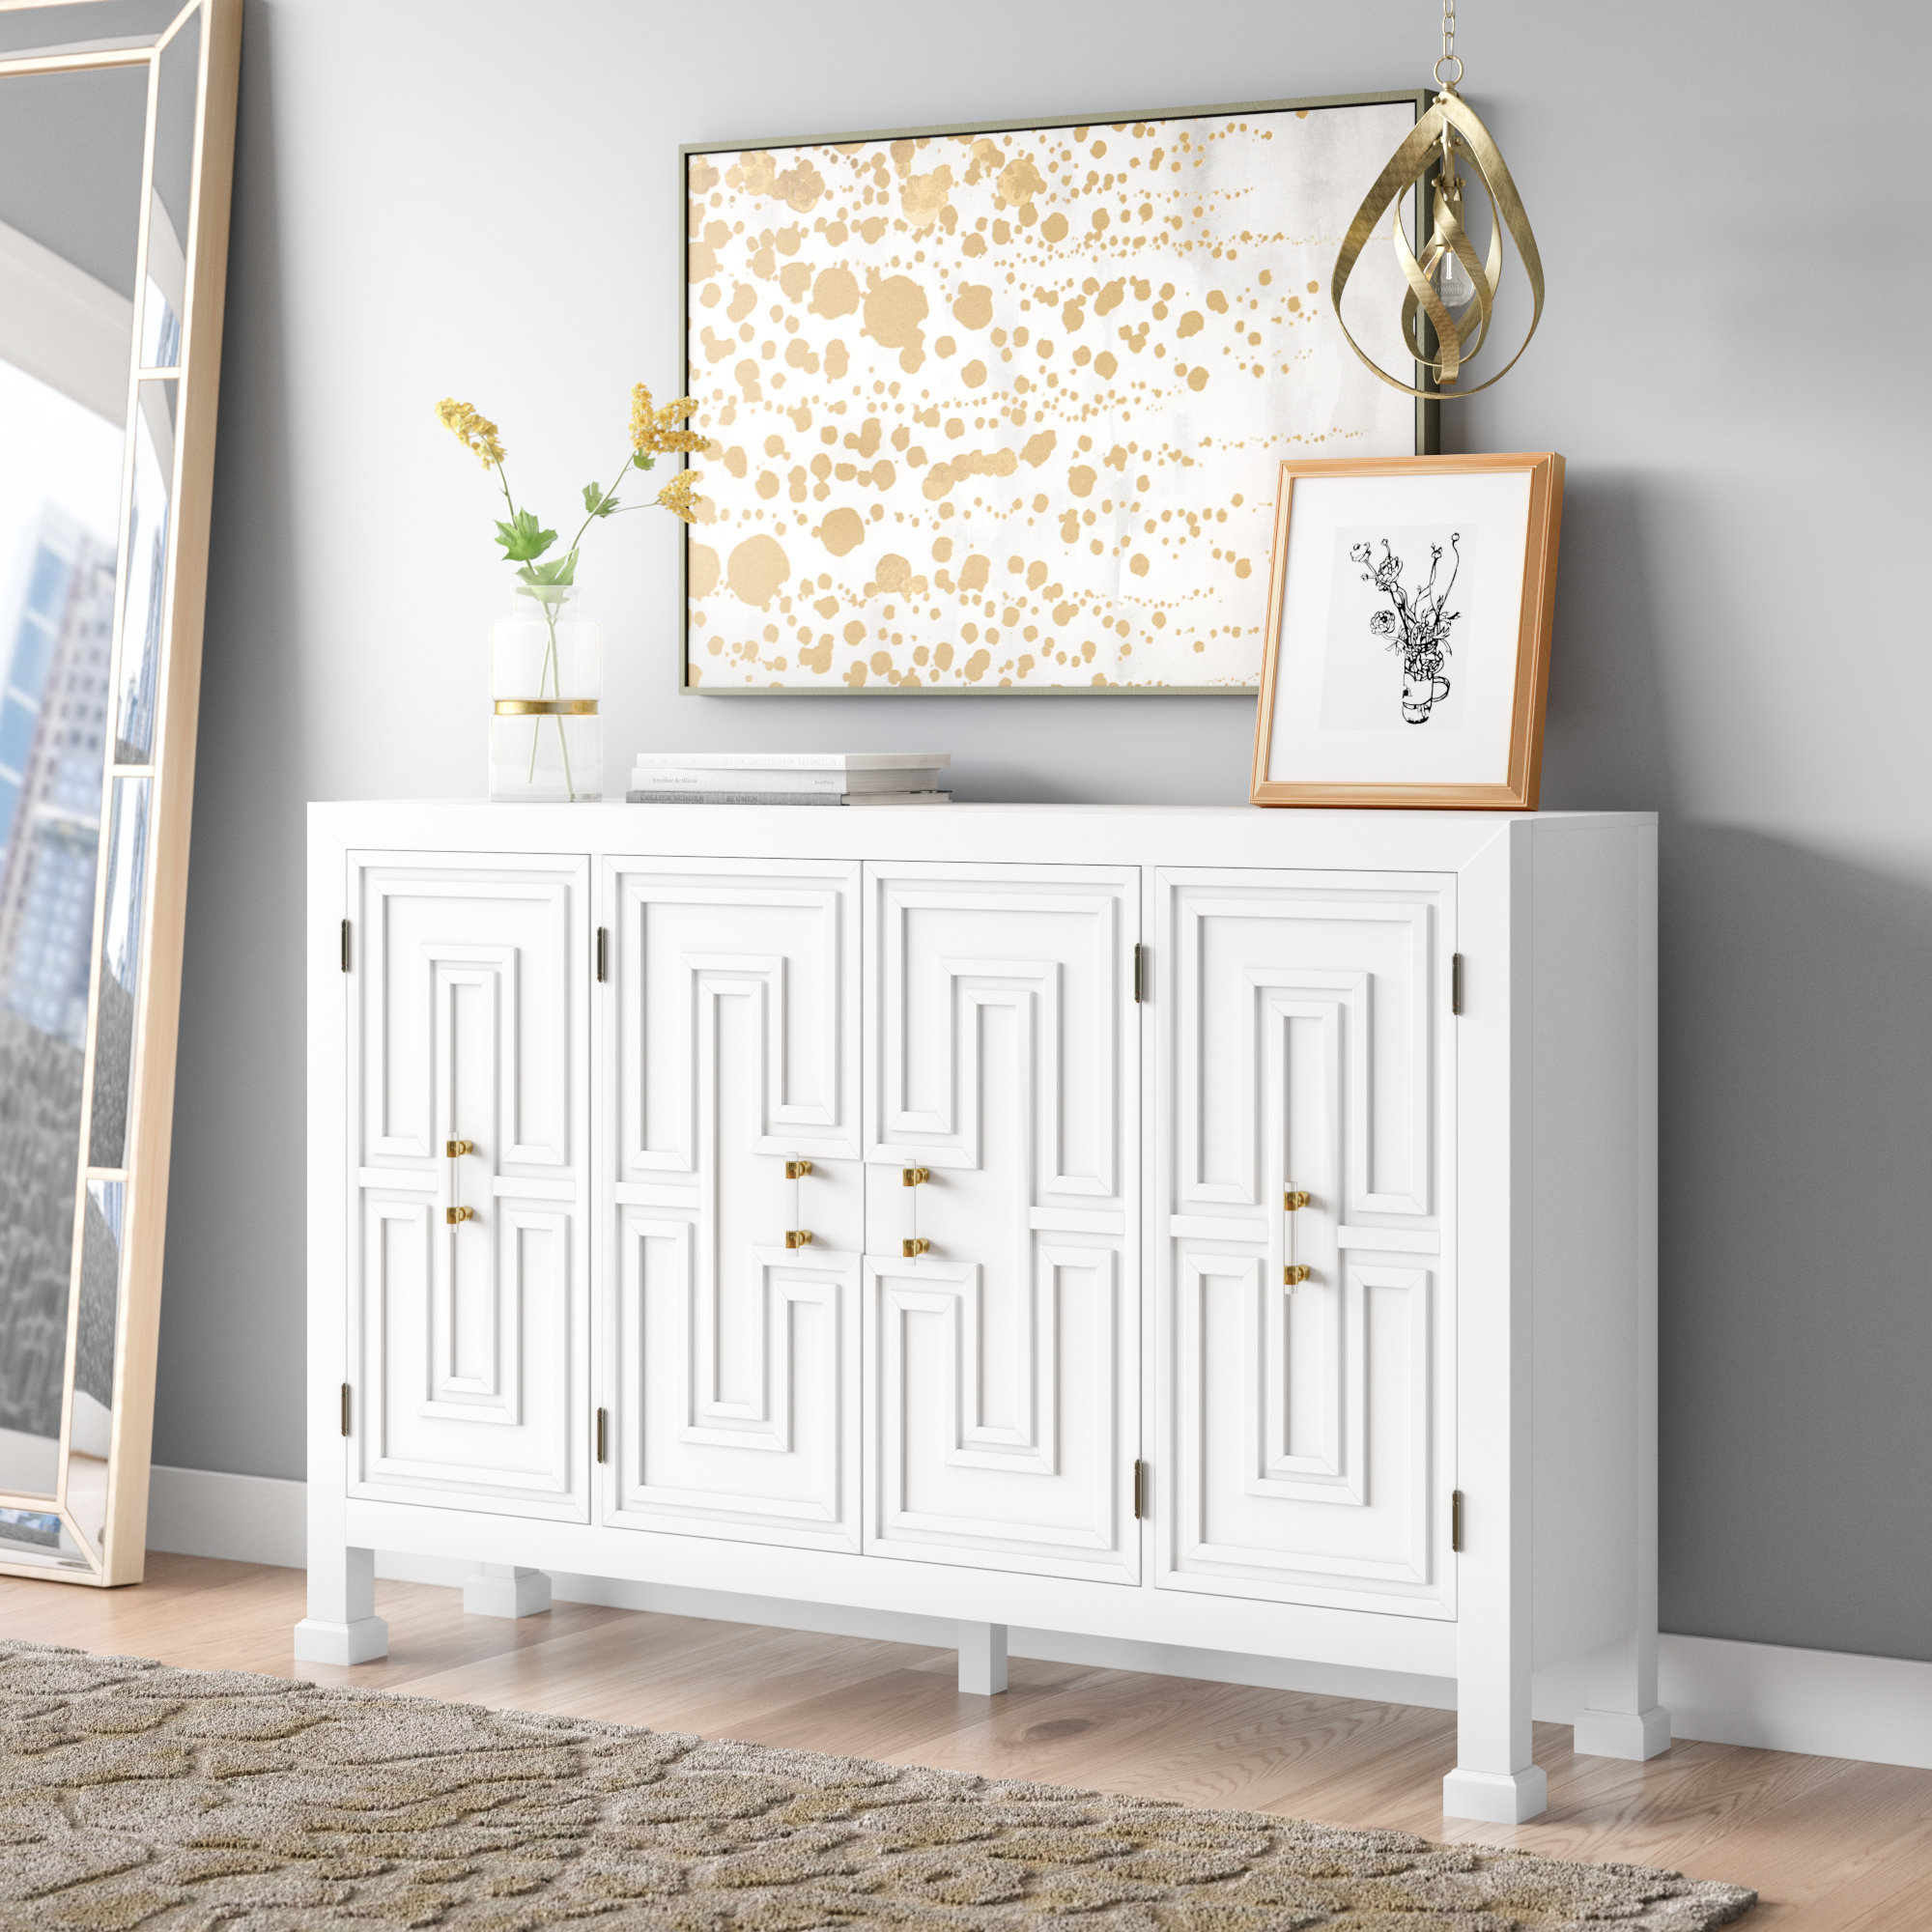 72 Inch Credenza | Wayfair Pertaining To Candace Door Credenzas (View 7 of 30)